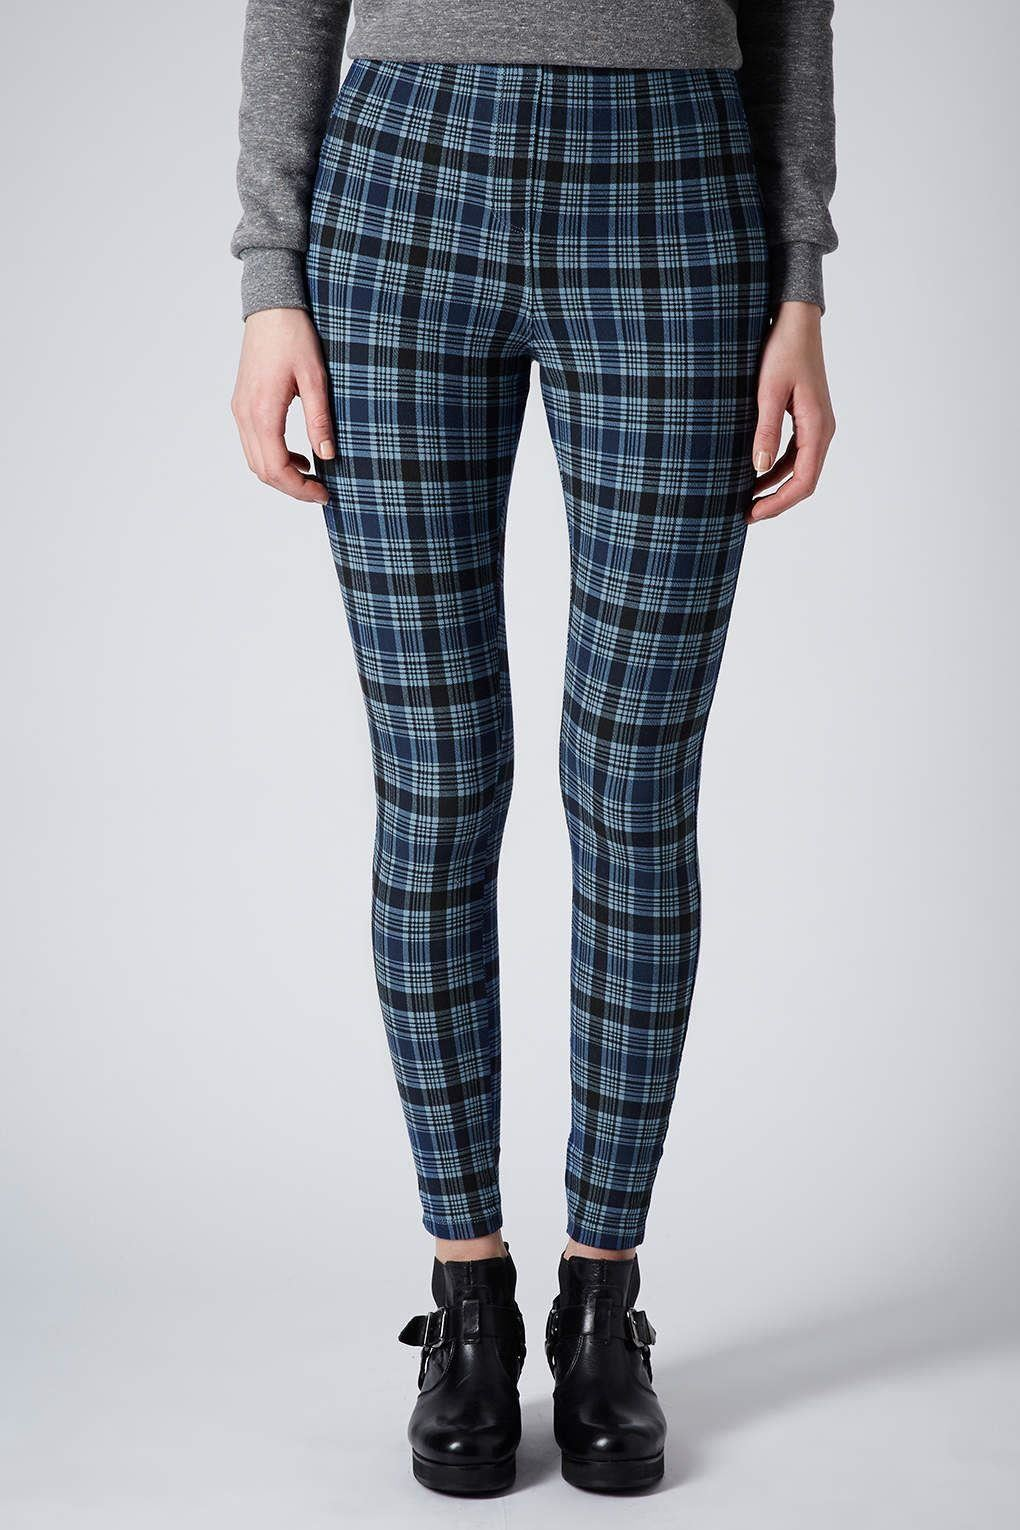 Topshop women 39 s casual tall check denim leggings ebay for Womens denim shirts topshop